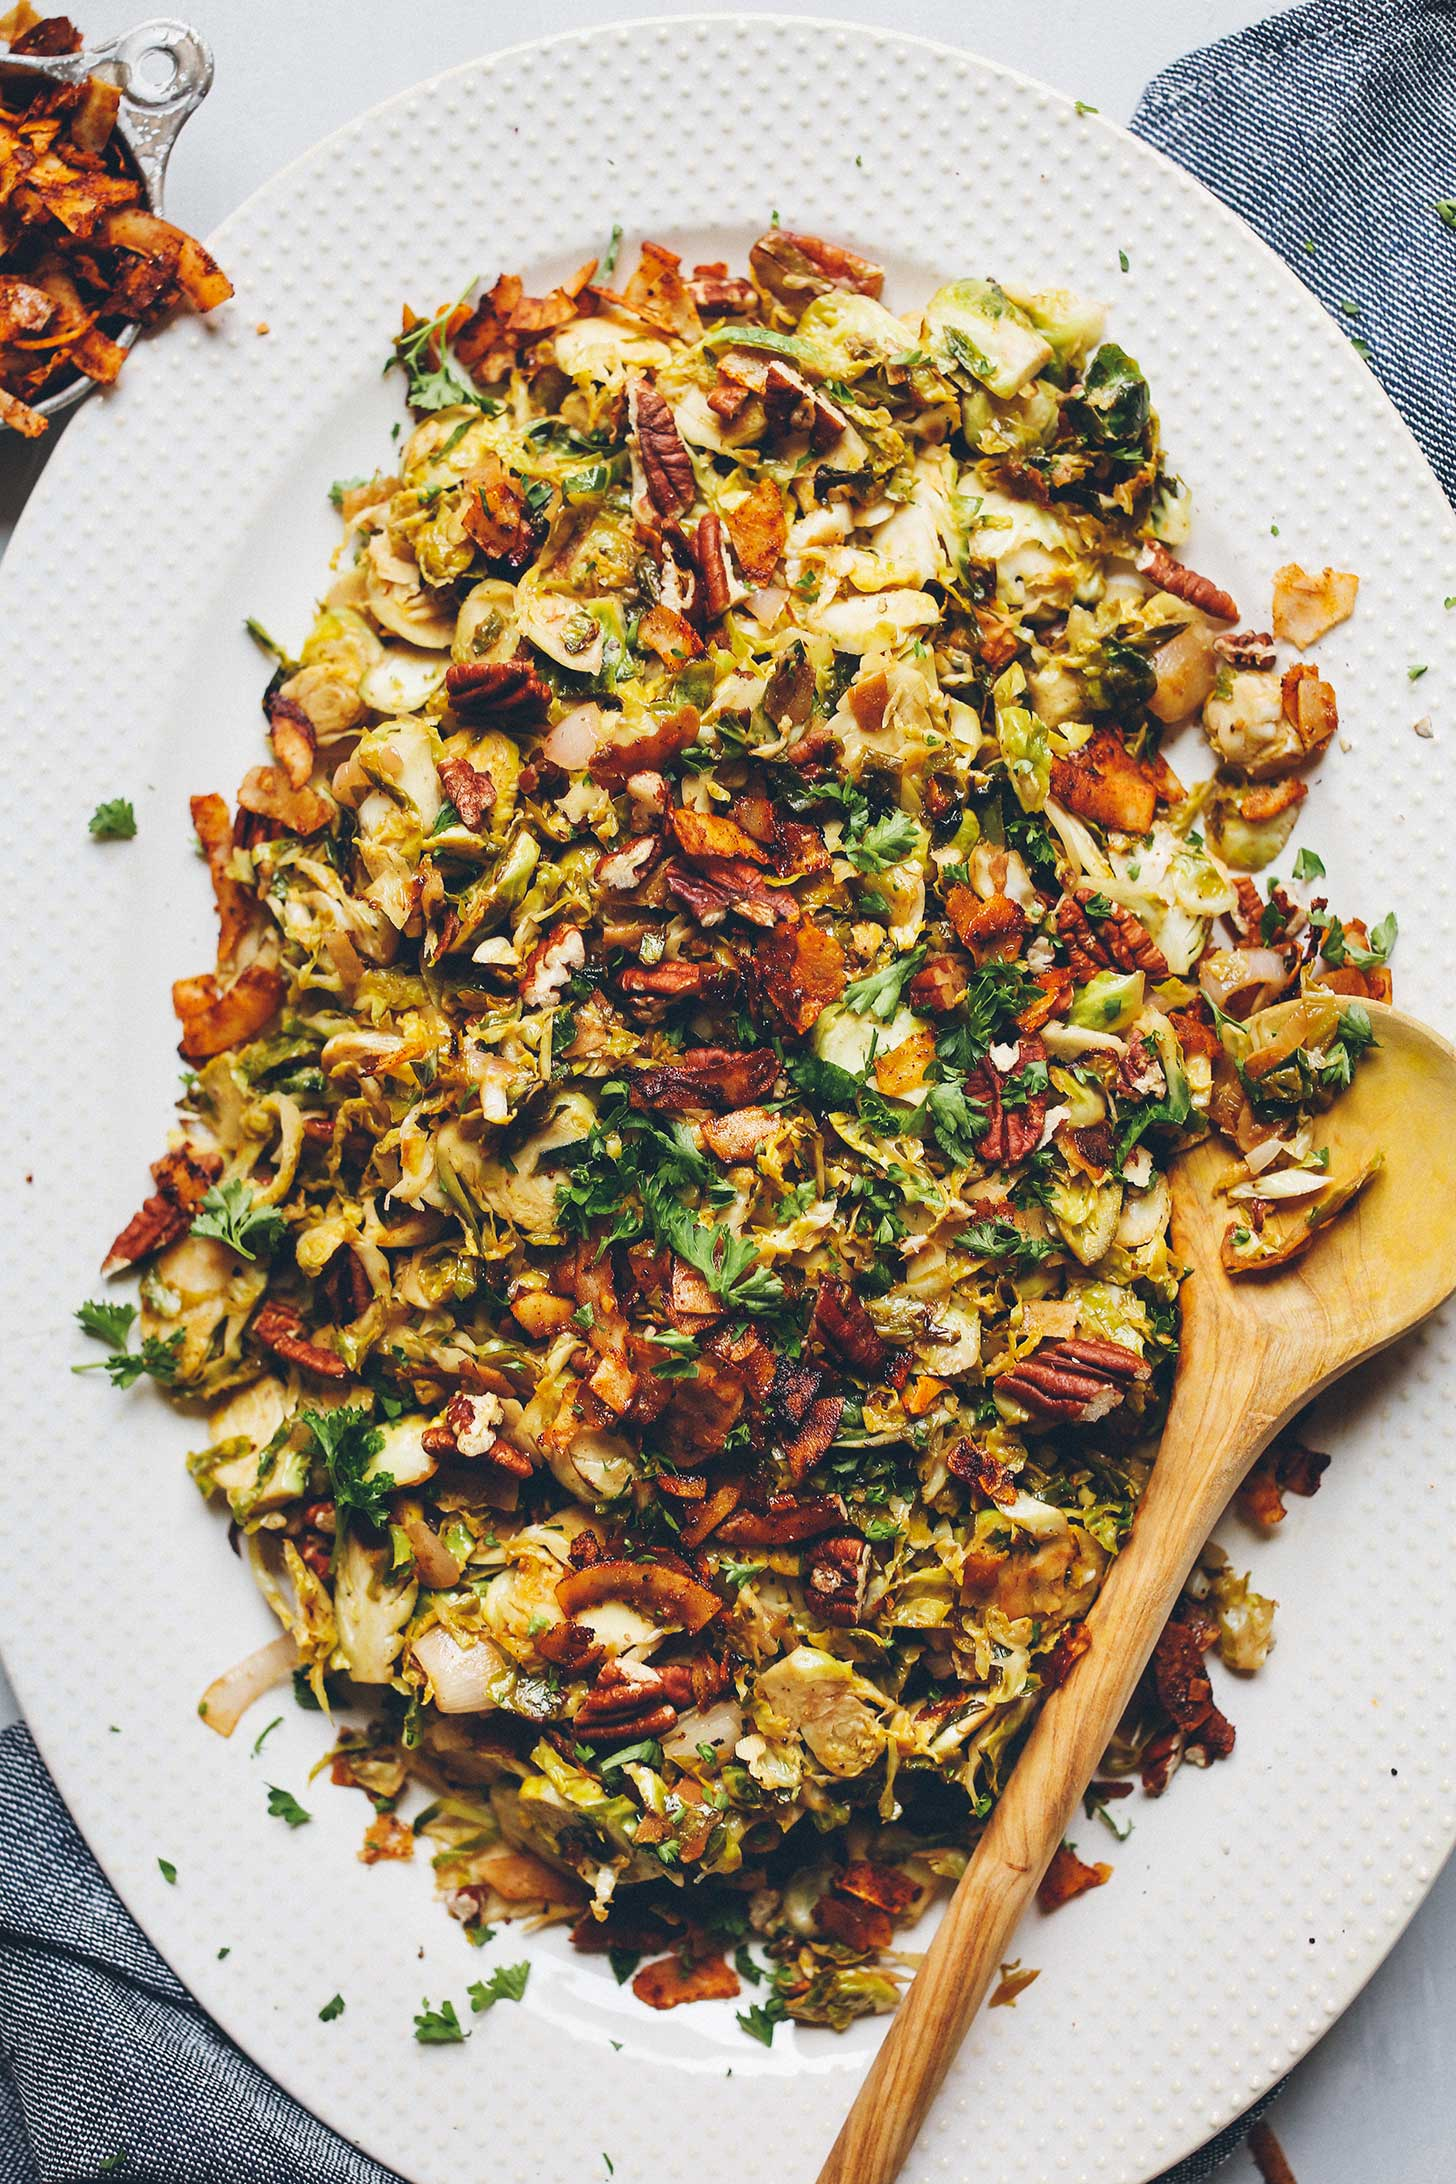 Platter filled with our gluten-free vegan Warm Brussels Sprout Slaw recipe